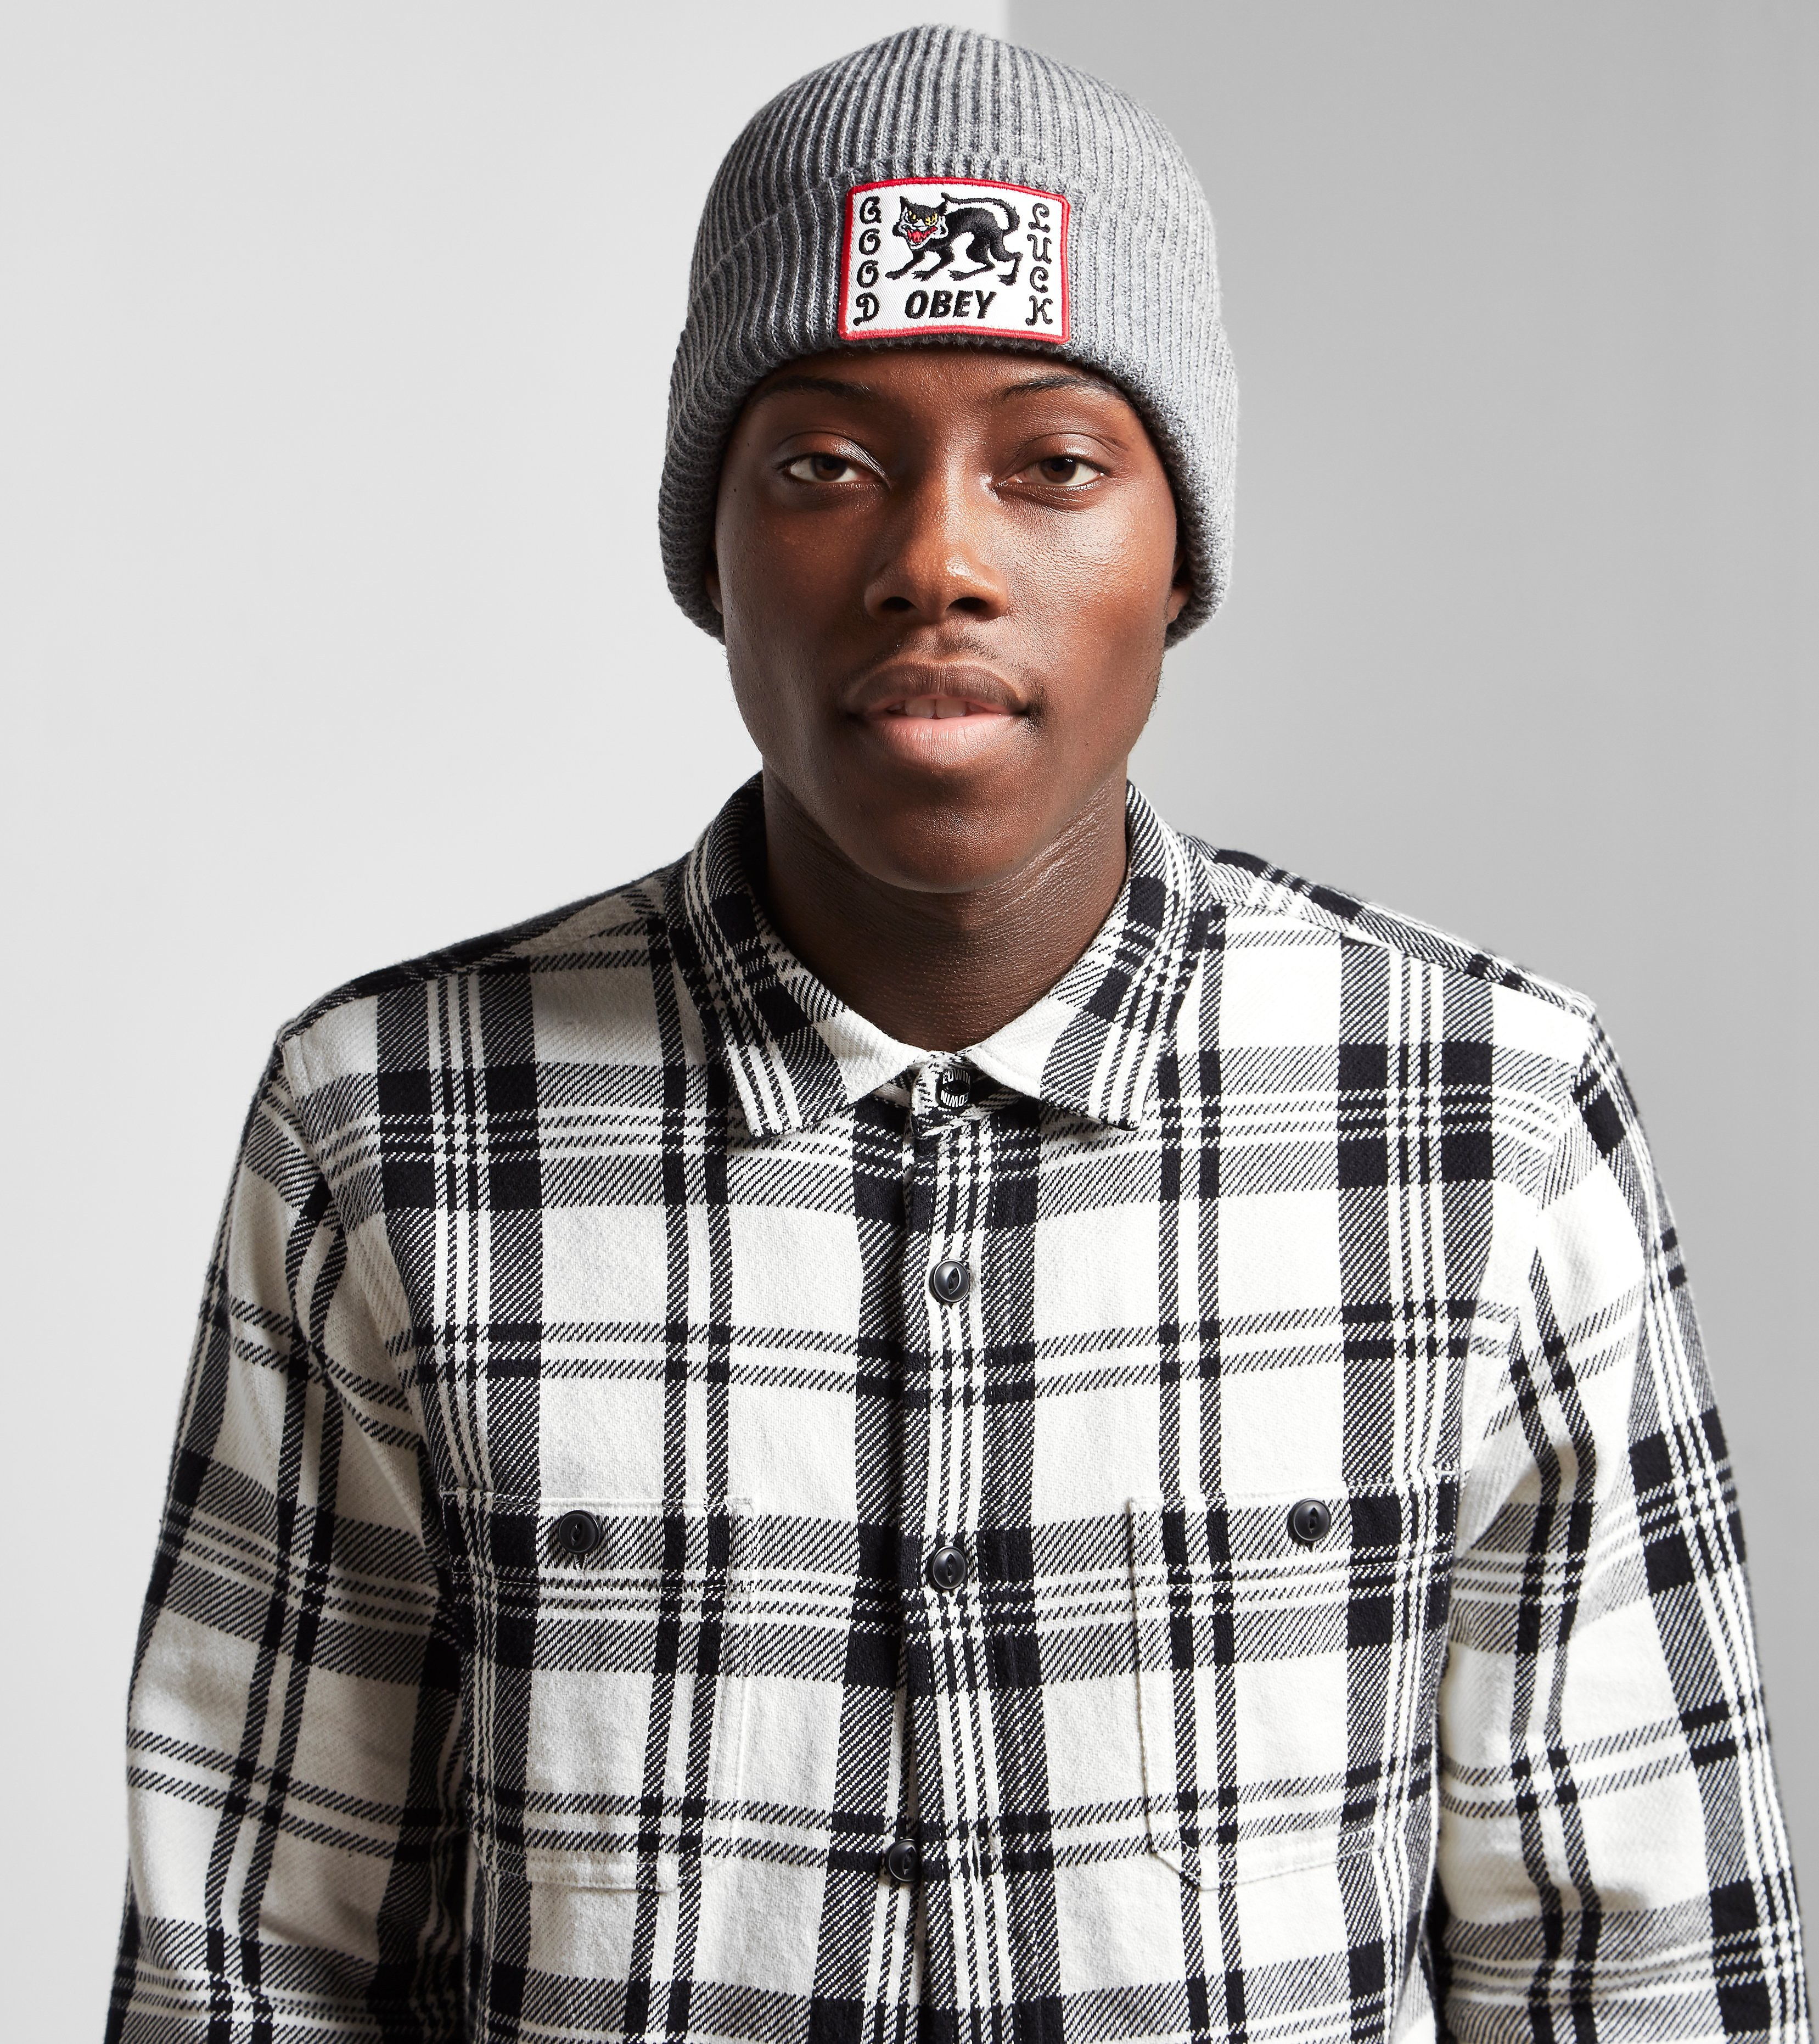 Obey Good Luck Beanie